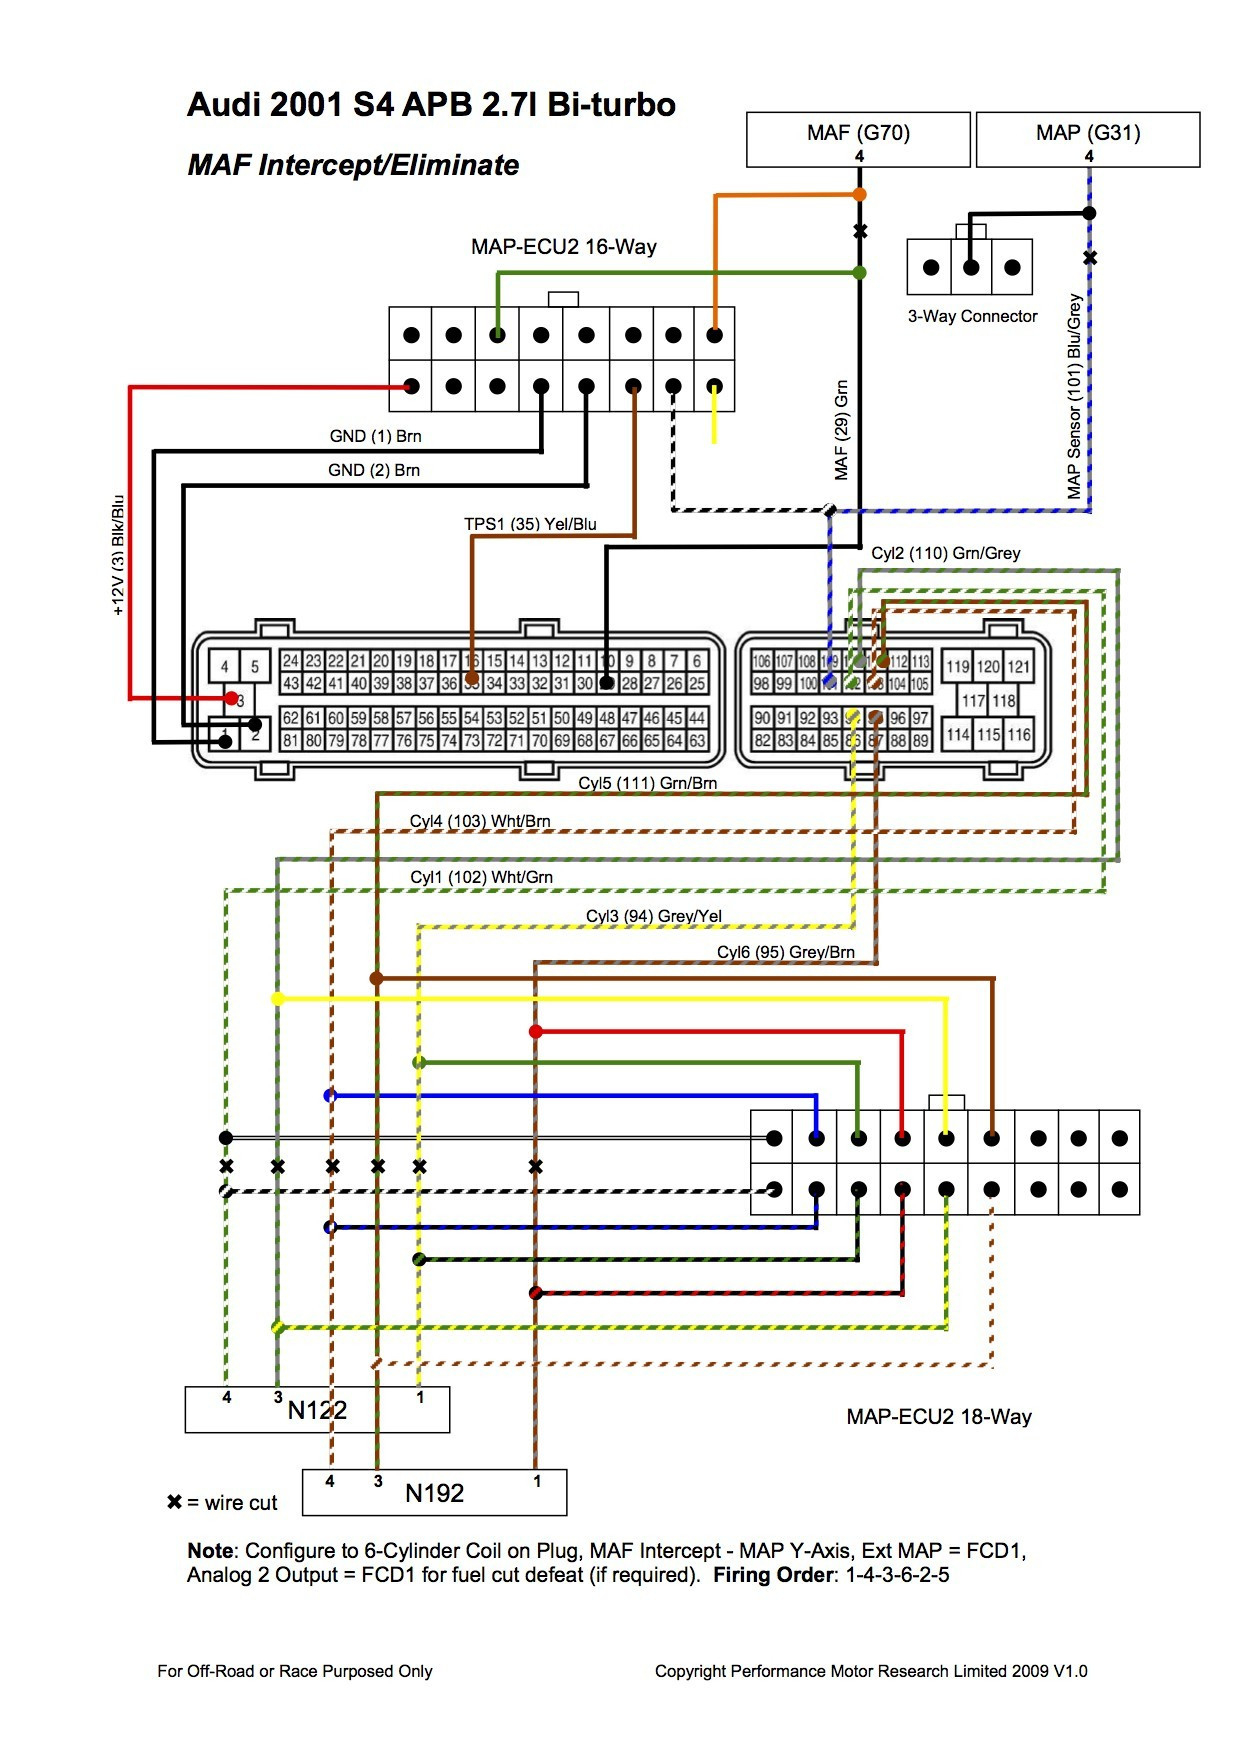 Tacoma Trailer Wiring Diagram | Trailer Wiring Diagram on 7 round trailer plug diagram, 7 pin trailer cord, 7 pin trailer jack wiring diagram, 1986 ford f150 fuel pump wiring diagram, 7 pin trailer schematic, 7 pin trailer wiring diagram pickup, chevy 7 pin wiring diagram, 7 rv plug diagram, 7 pin trailer lights wiring diagram, 2003 chevy silverado radio wiring diagram, ford 7 pin wiring diagram, 7 pin camper wiring diagram, 2008 ford escape radio wiring diagram, 50 amp rv outlet wiring diagram, dodge 7 pin wiring diagram, 4 way trailer wiring diagram, 7 prong trailer plug diagram, fan clutch diagram, 7 pin tow wiring, outlets in series wiring diagram,